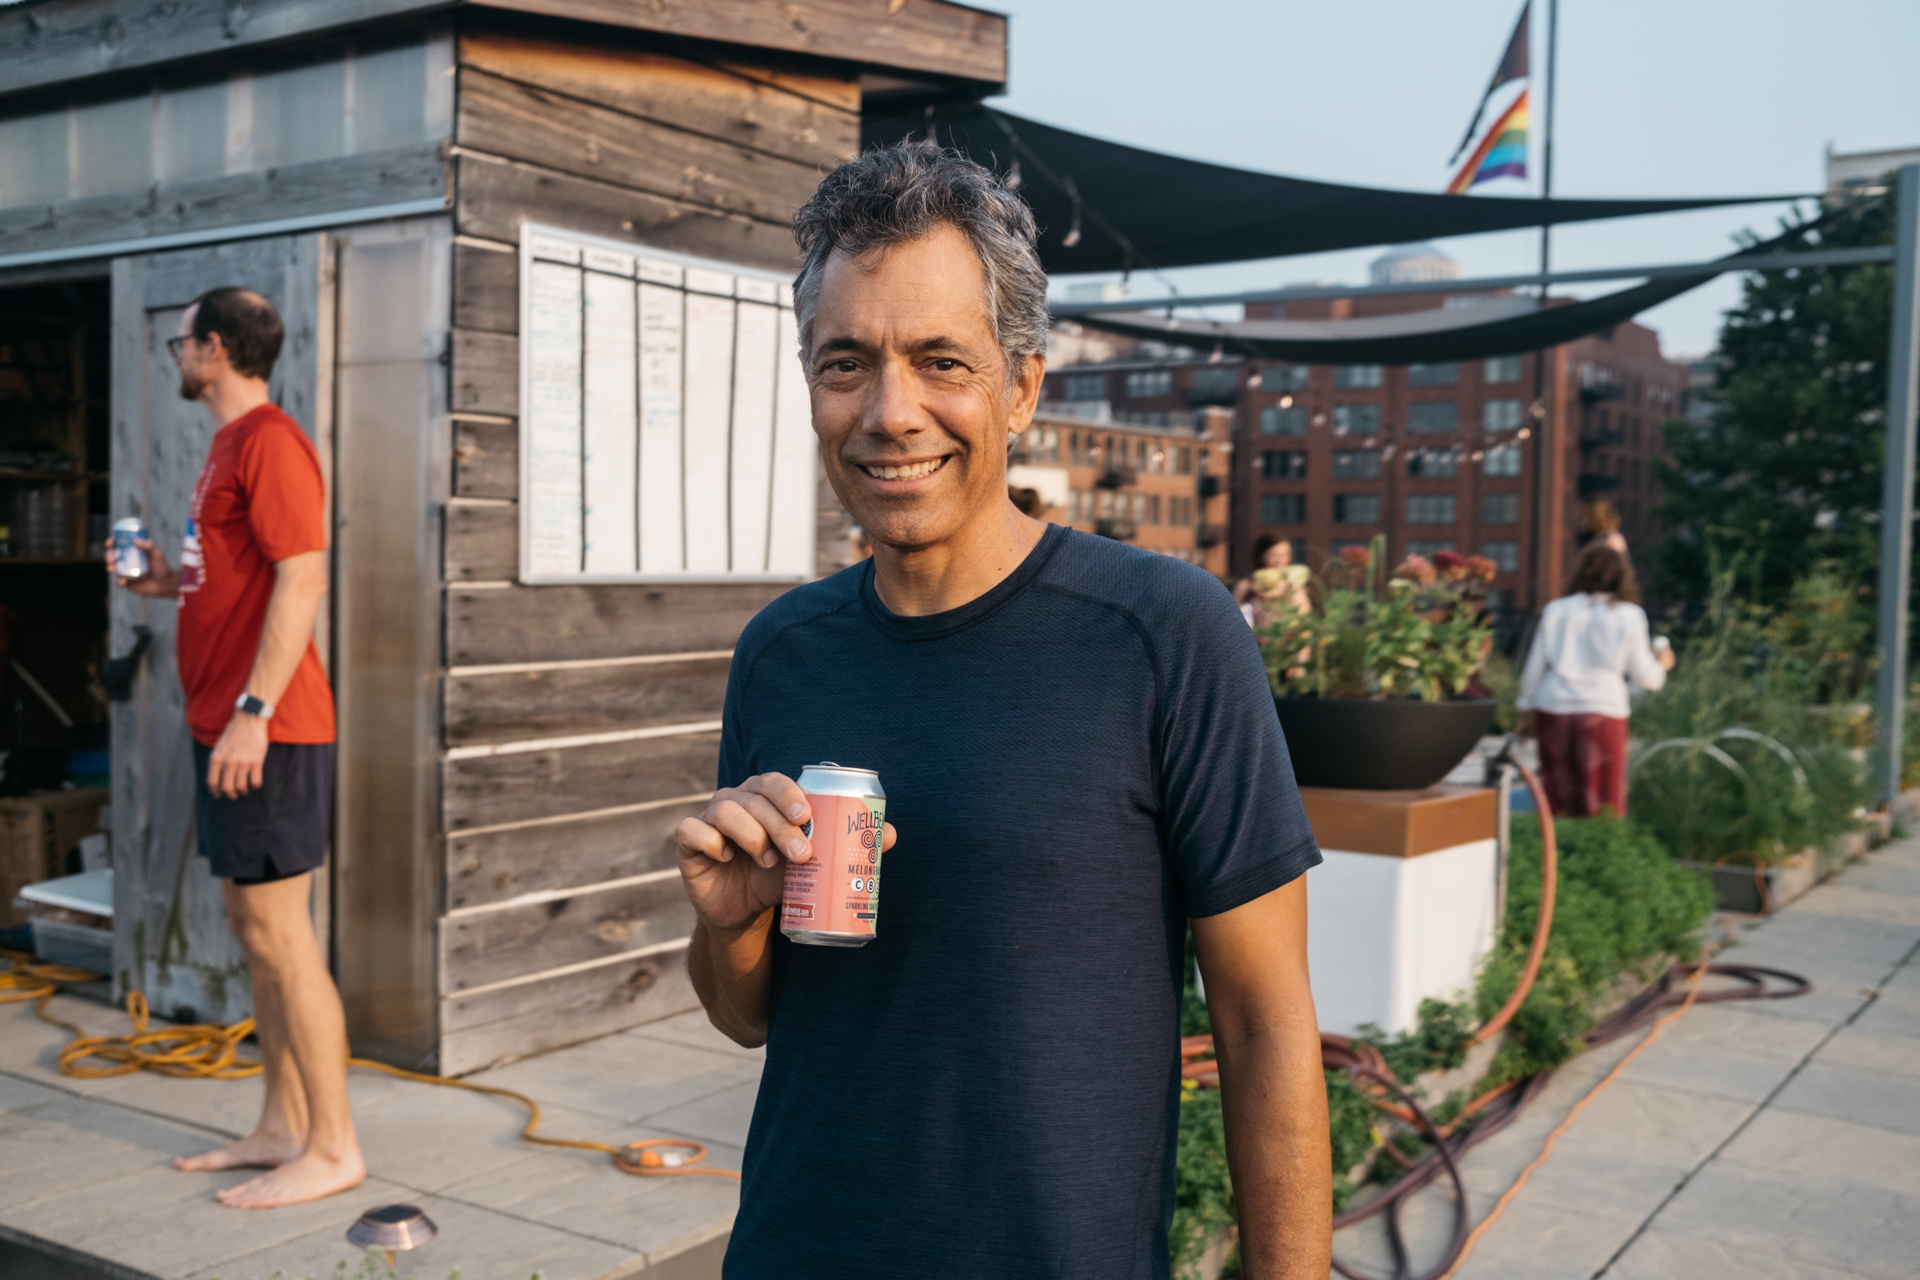 White man holding a beverage standing on a rooftop.